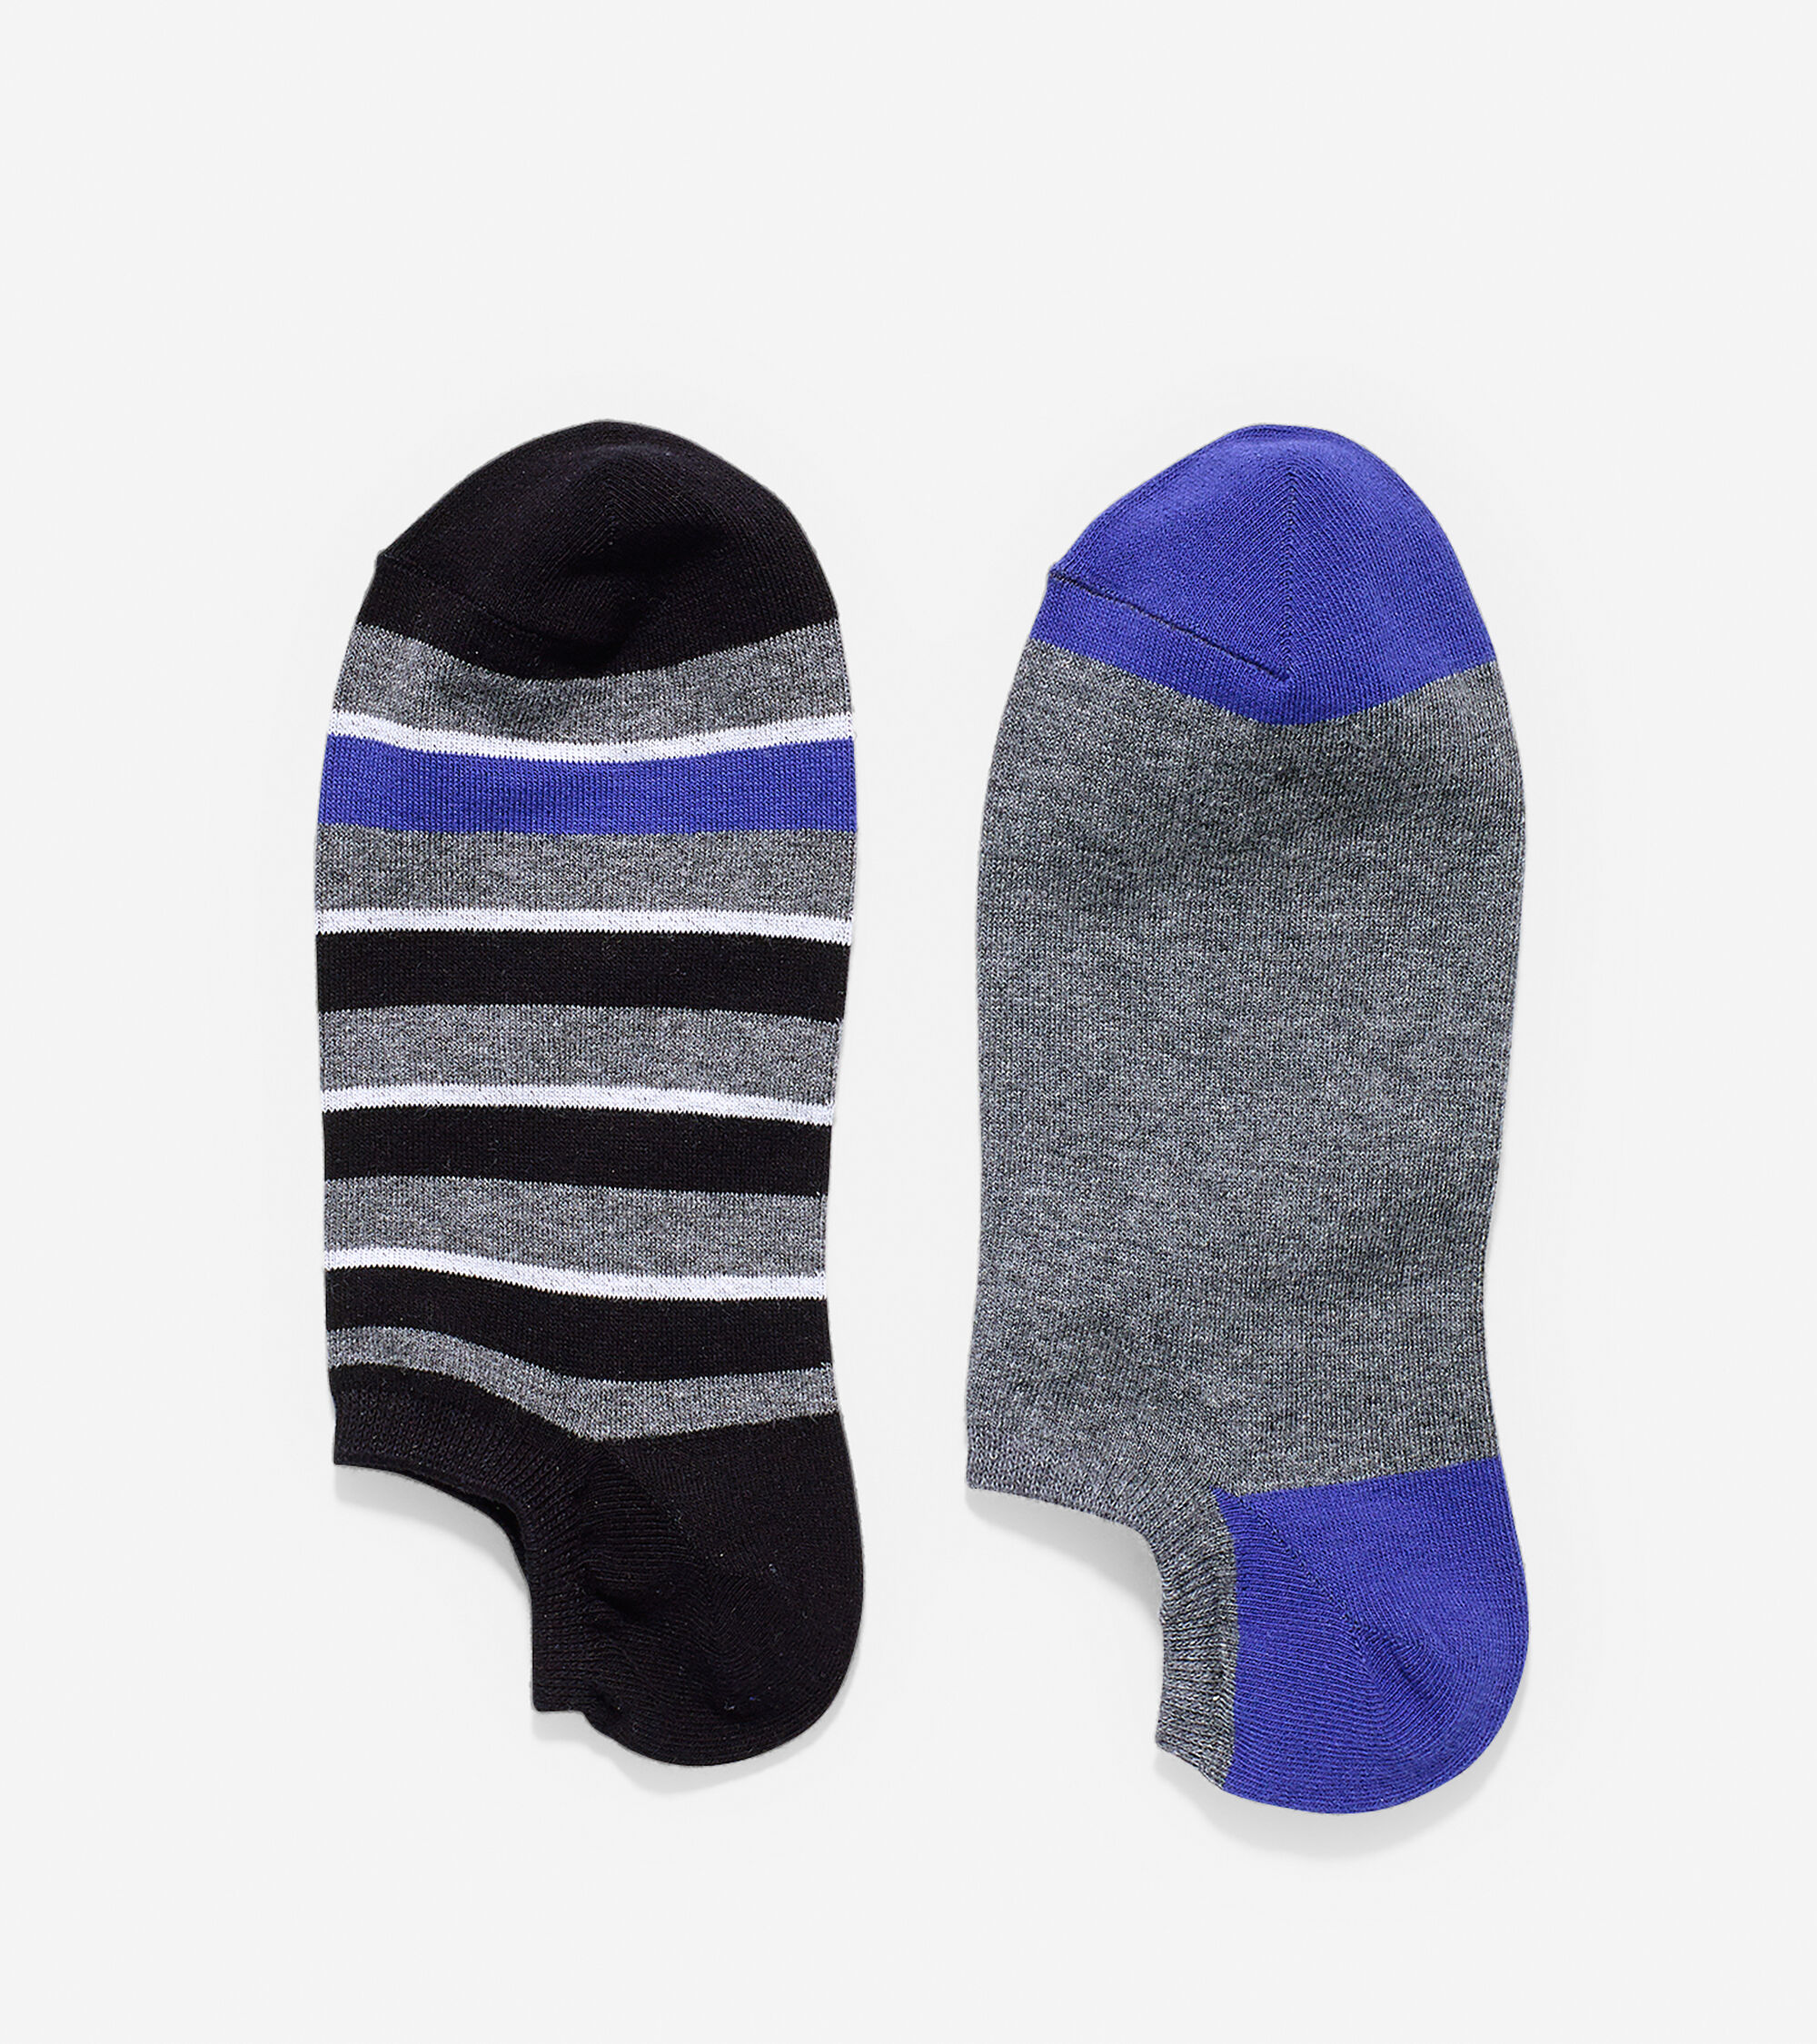 Accessories > Village Stripe Low Cut Socks - 2 Pack